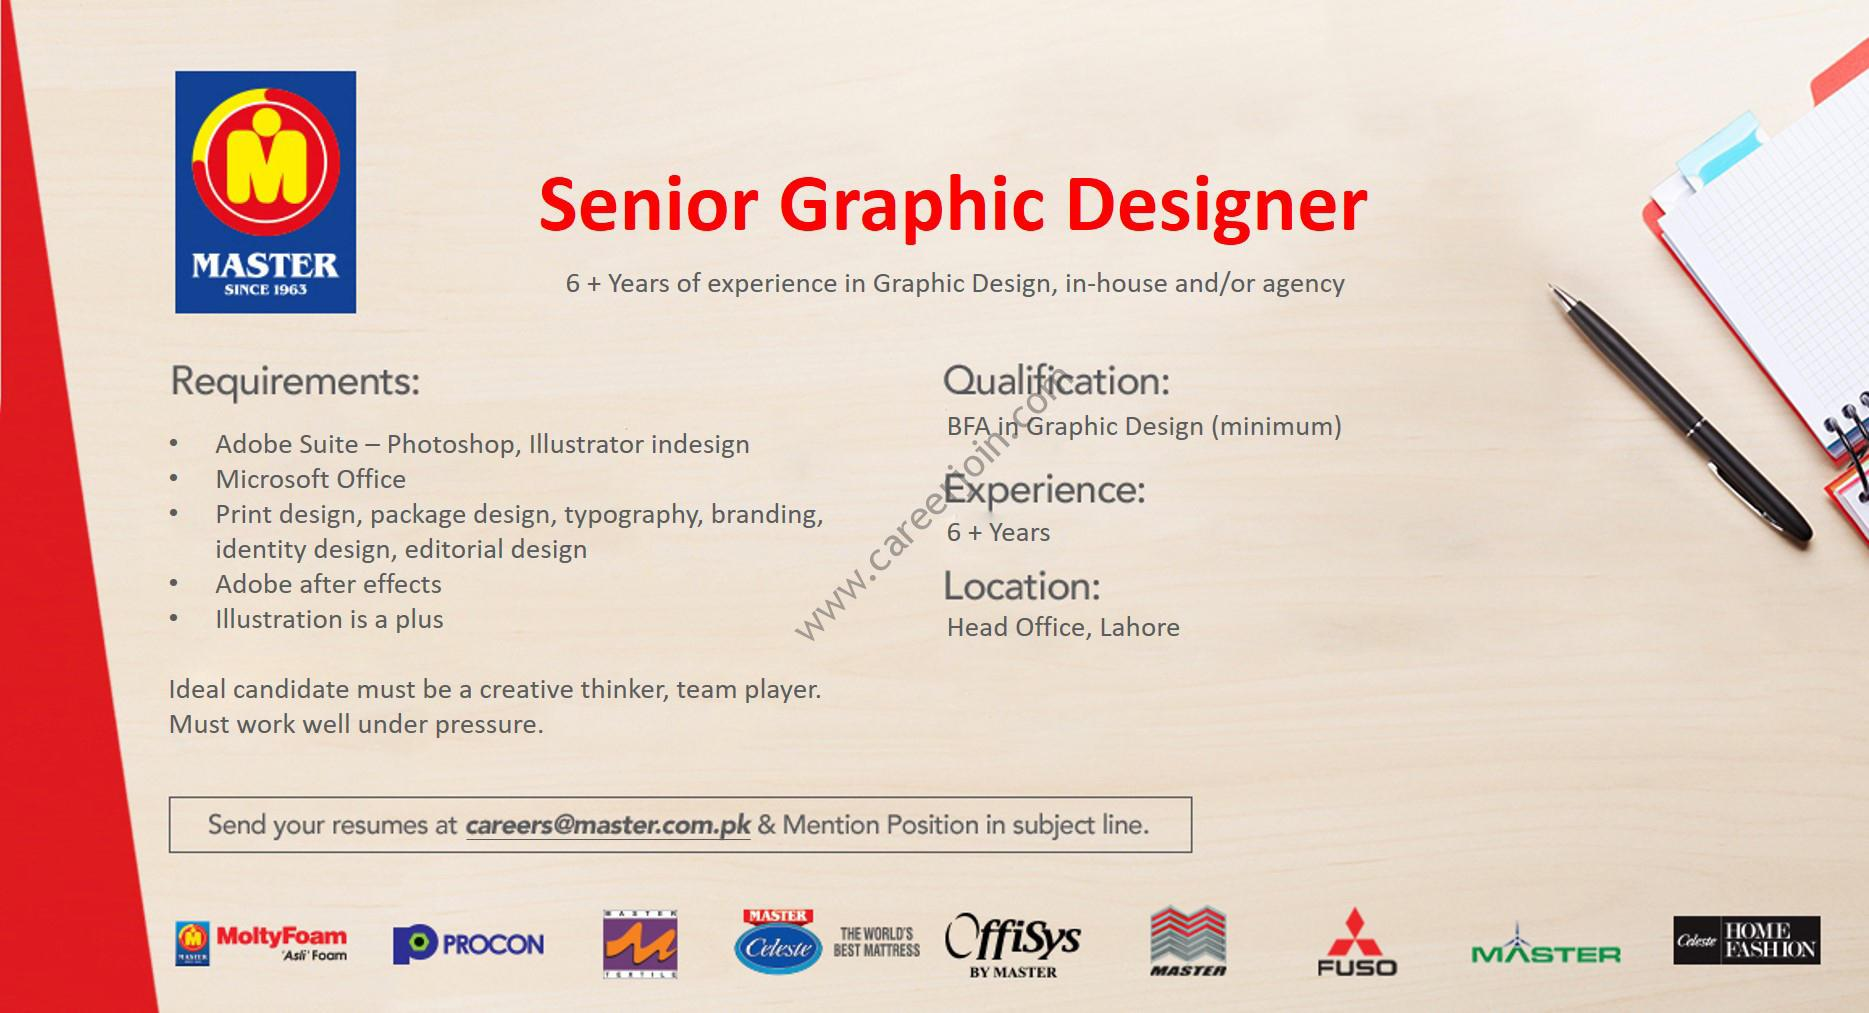 Master Group Of Companies Jobs Senior Graphic Designer